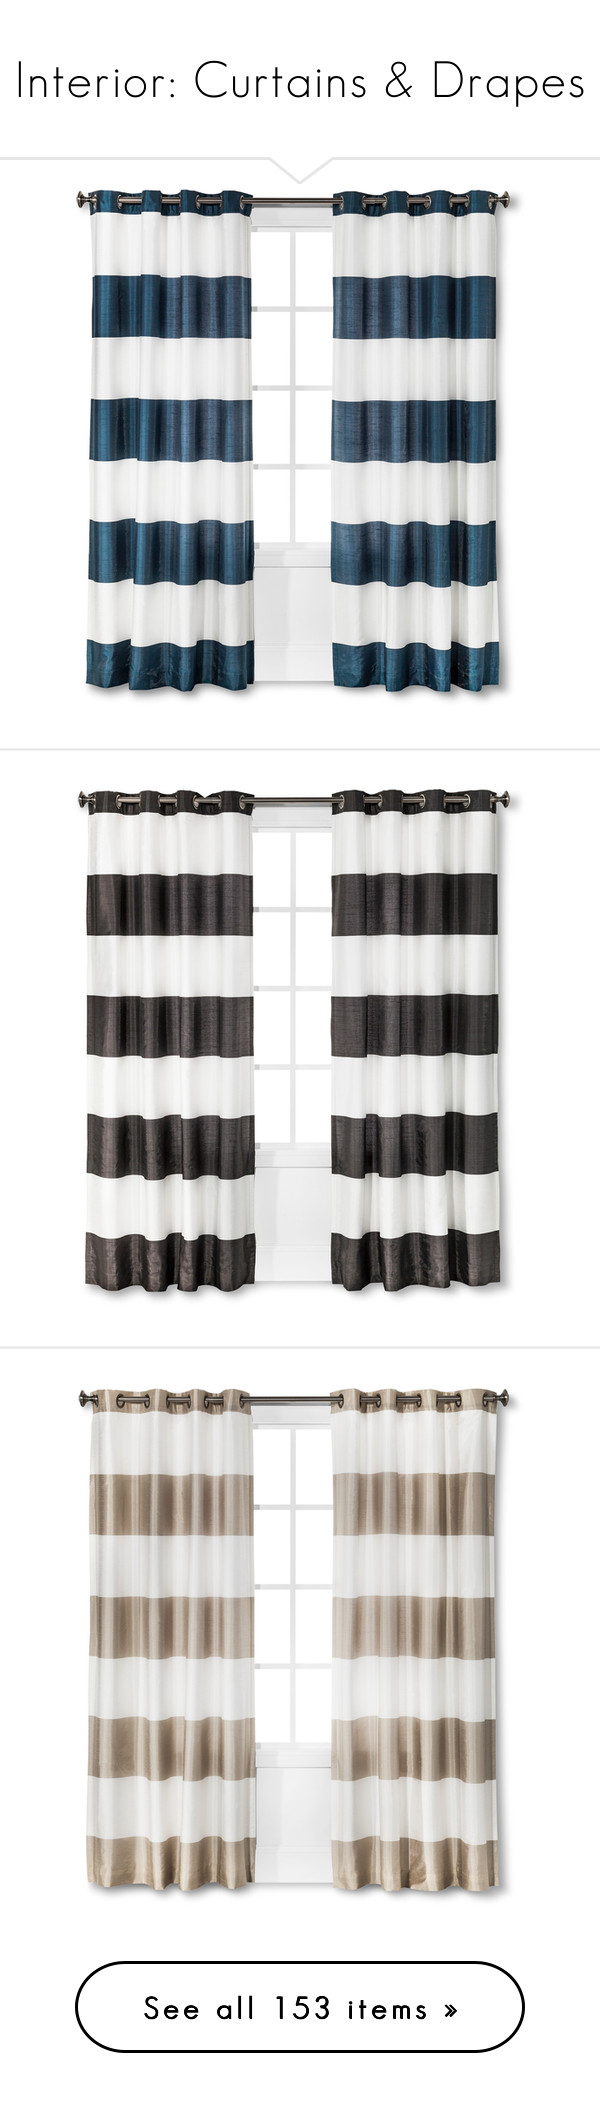 """""""Interior: Curtains & Drapes"""" by jacci0528 ❤ liked on Polyvore featuring home, home decor, window treatments, curtains, modern window treatments, modern curtain panels, grommet drapery panels, cabana stripe curtains, grommet window treatments and bold stripe curtains"""